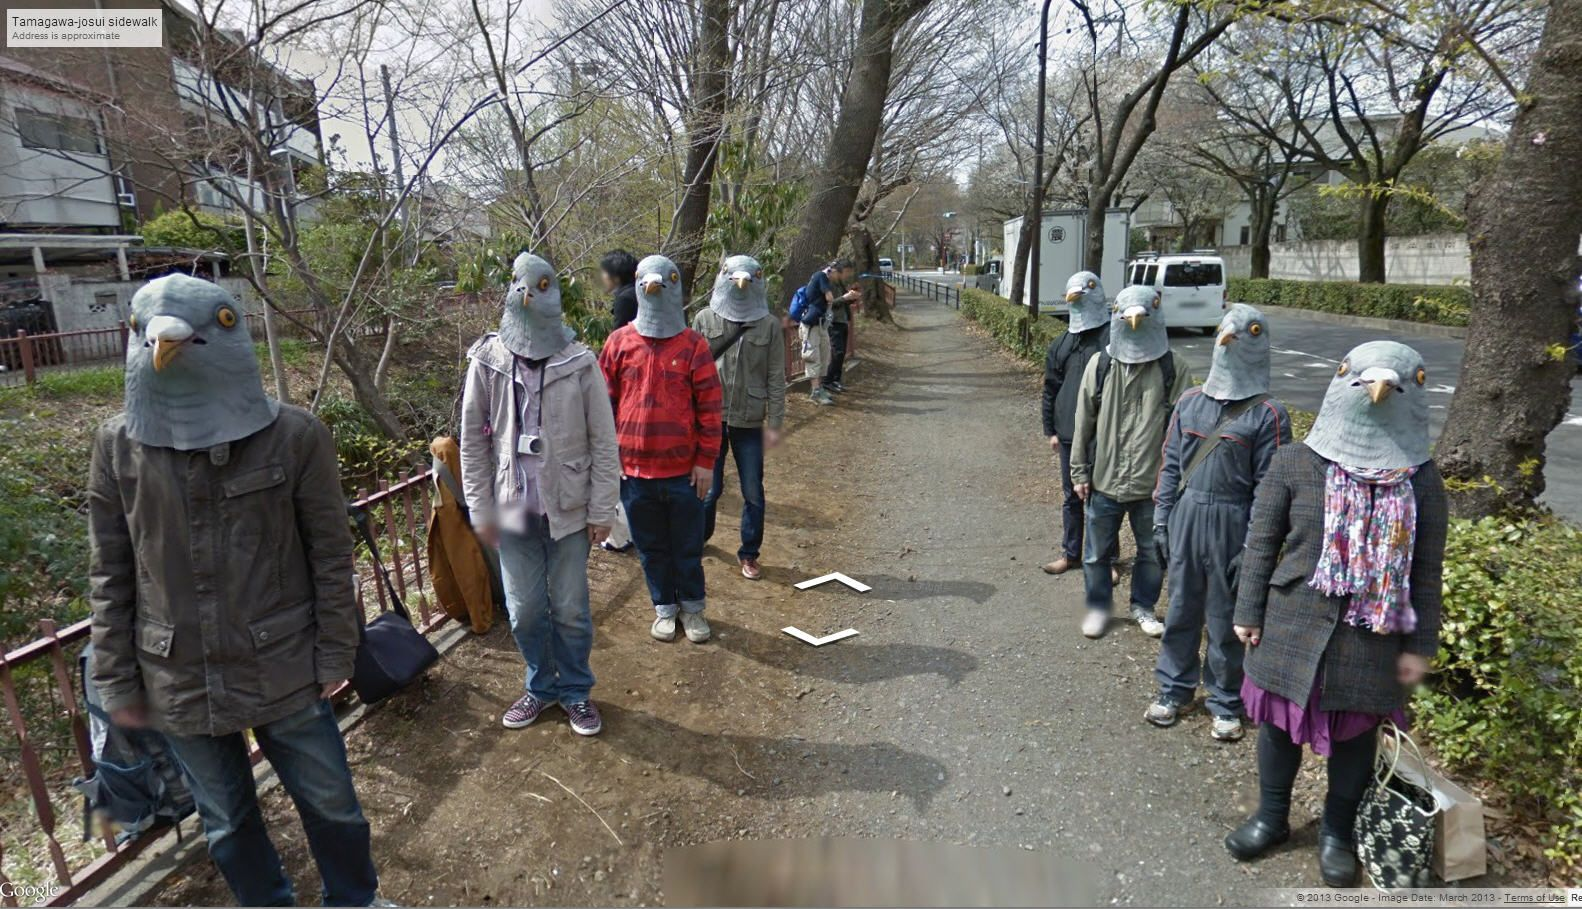 This has got to be the strangest Google Street View ever